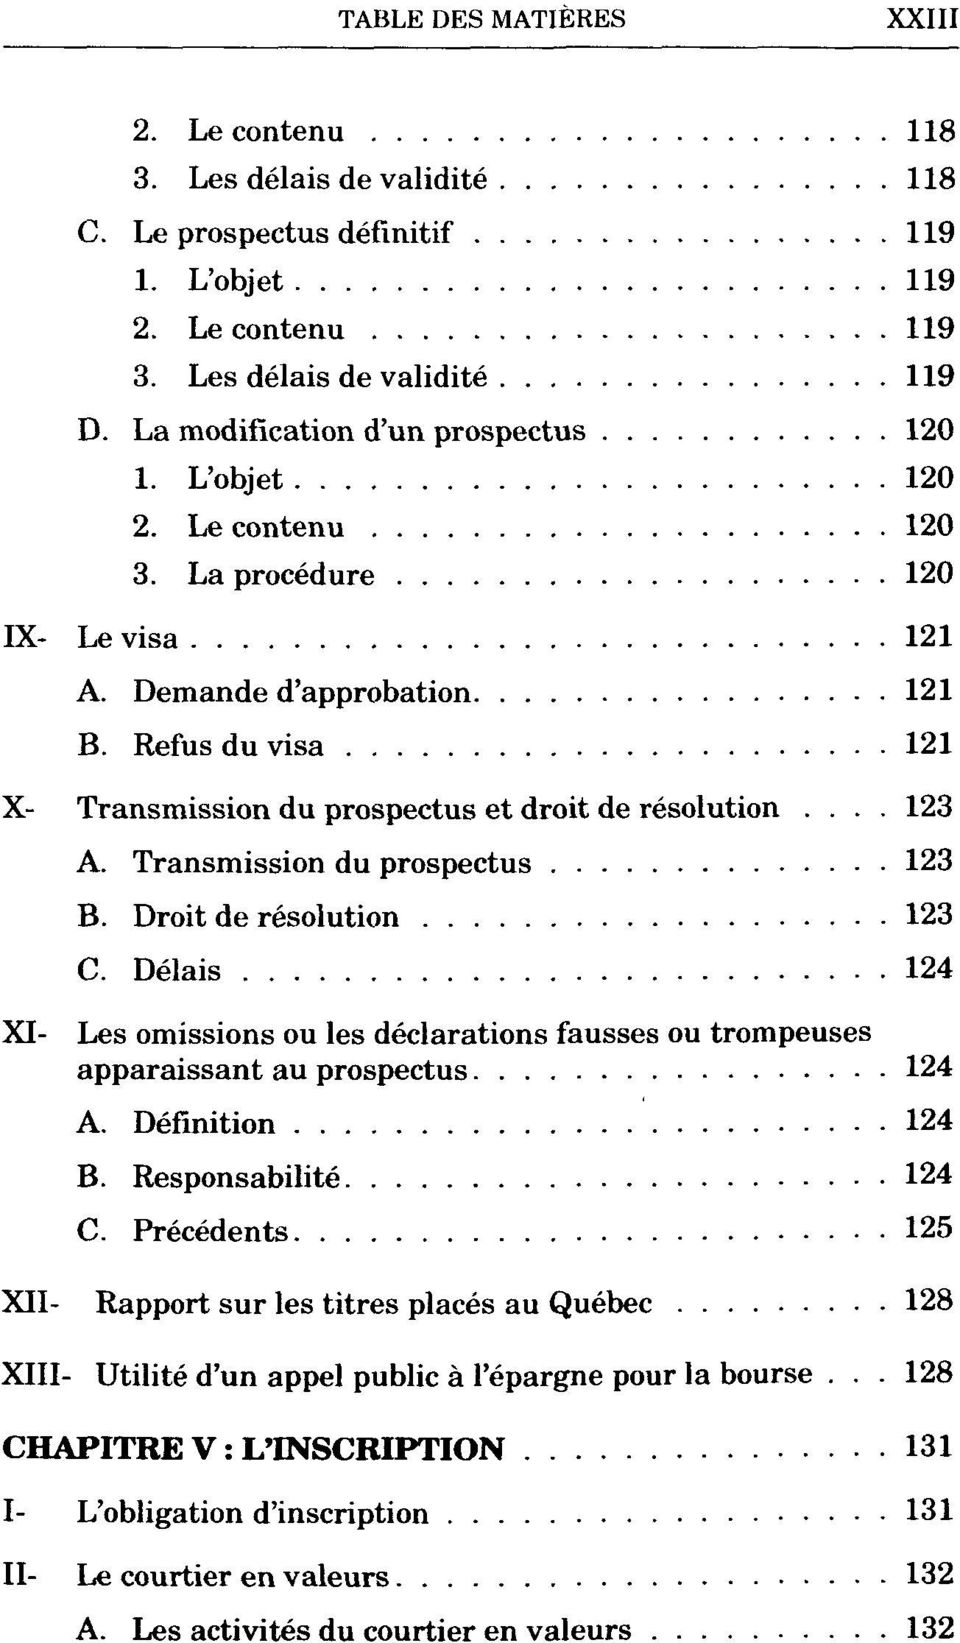 Refusduvisa 121 X- Transmission du prospectus et droit de resolution... 123 A. Transmission du prospectus 123 B. Droit de resolution 123 C.